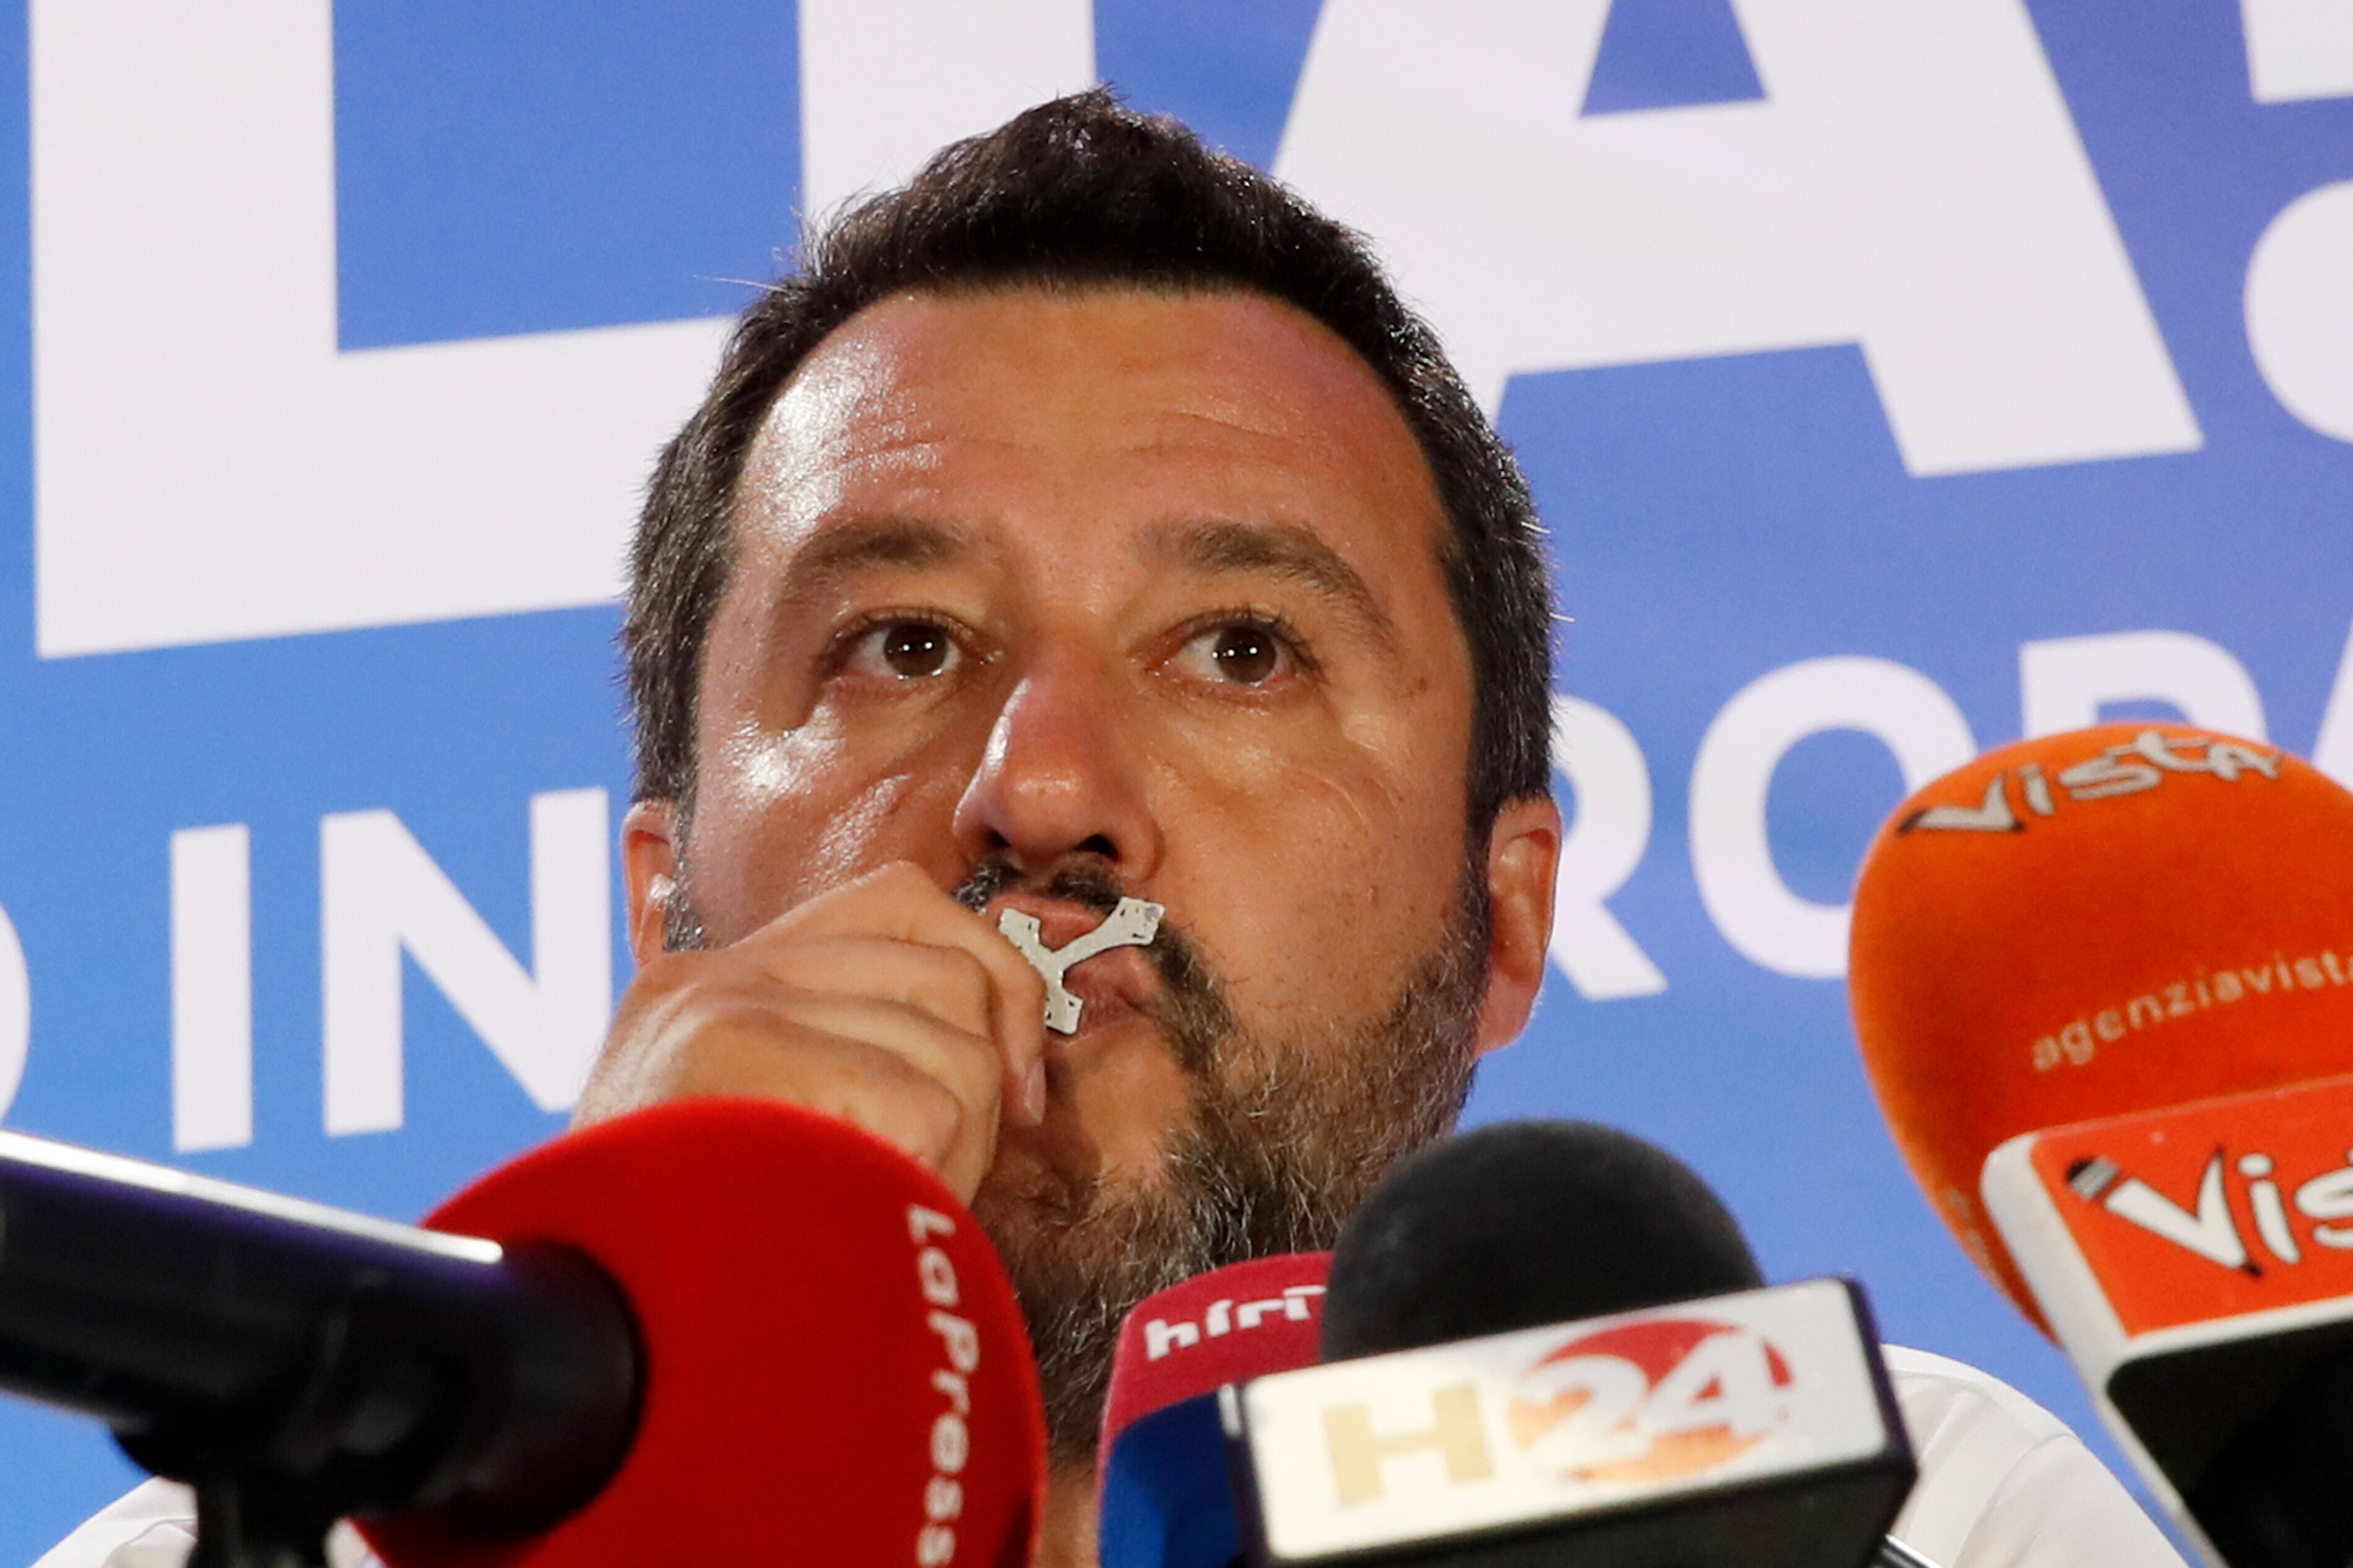 Salvini has focused his party almost solely on opposing immigration, demanding concessions from the EU and attacking Islam.